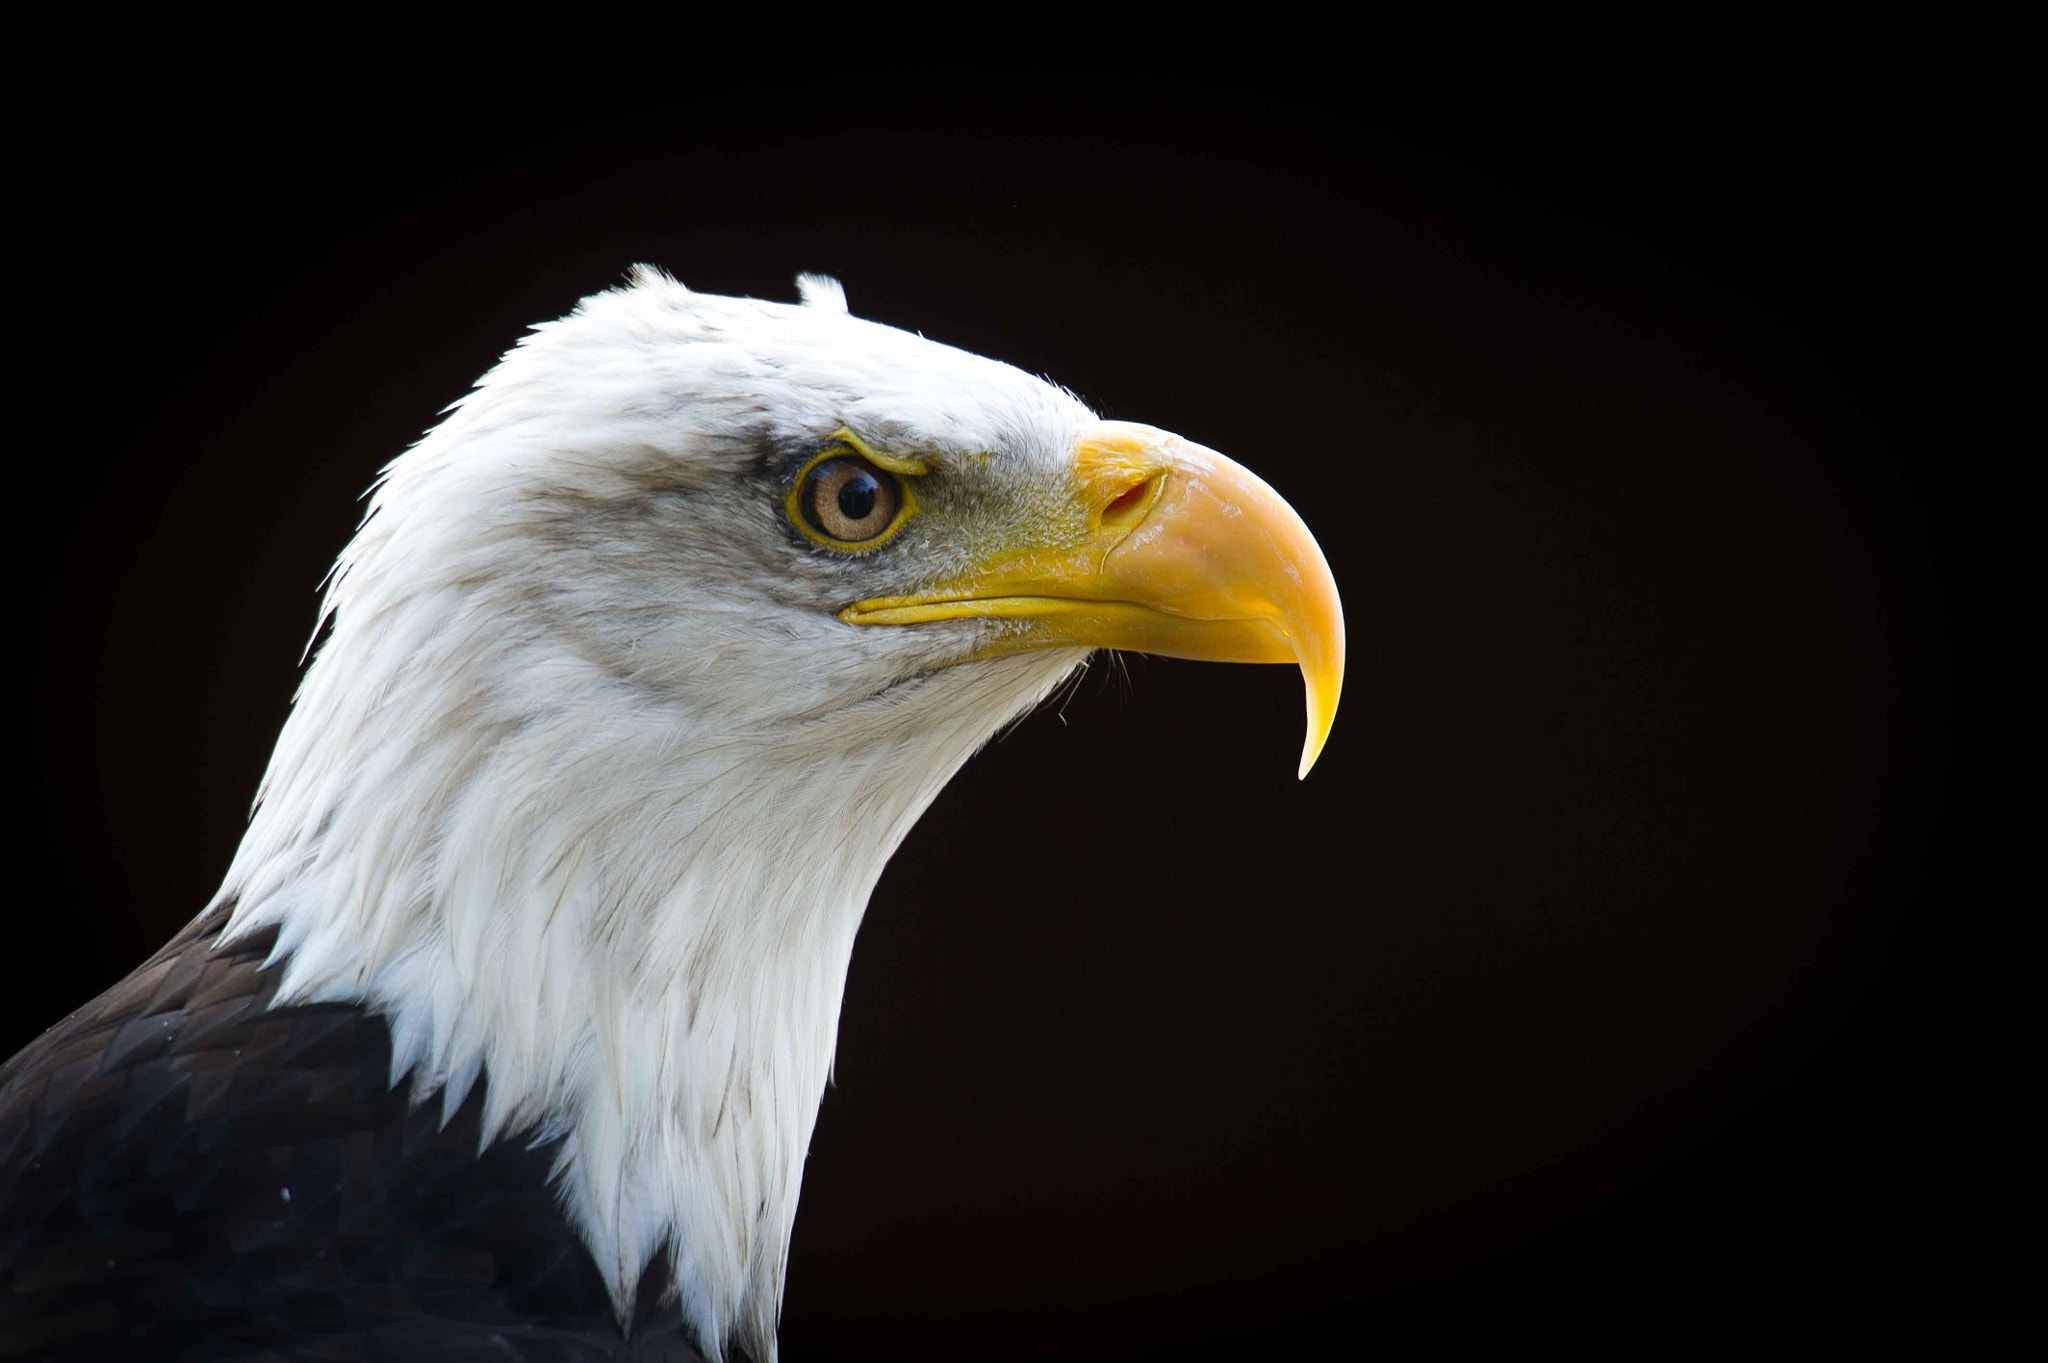 Photograph Eagle by Mauri  on 500px